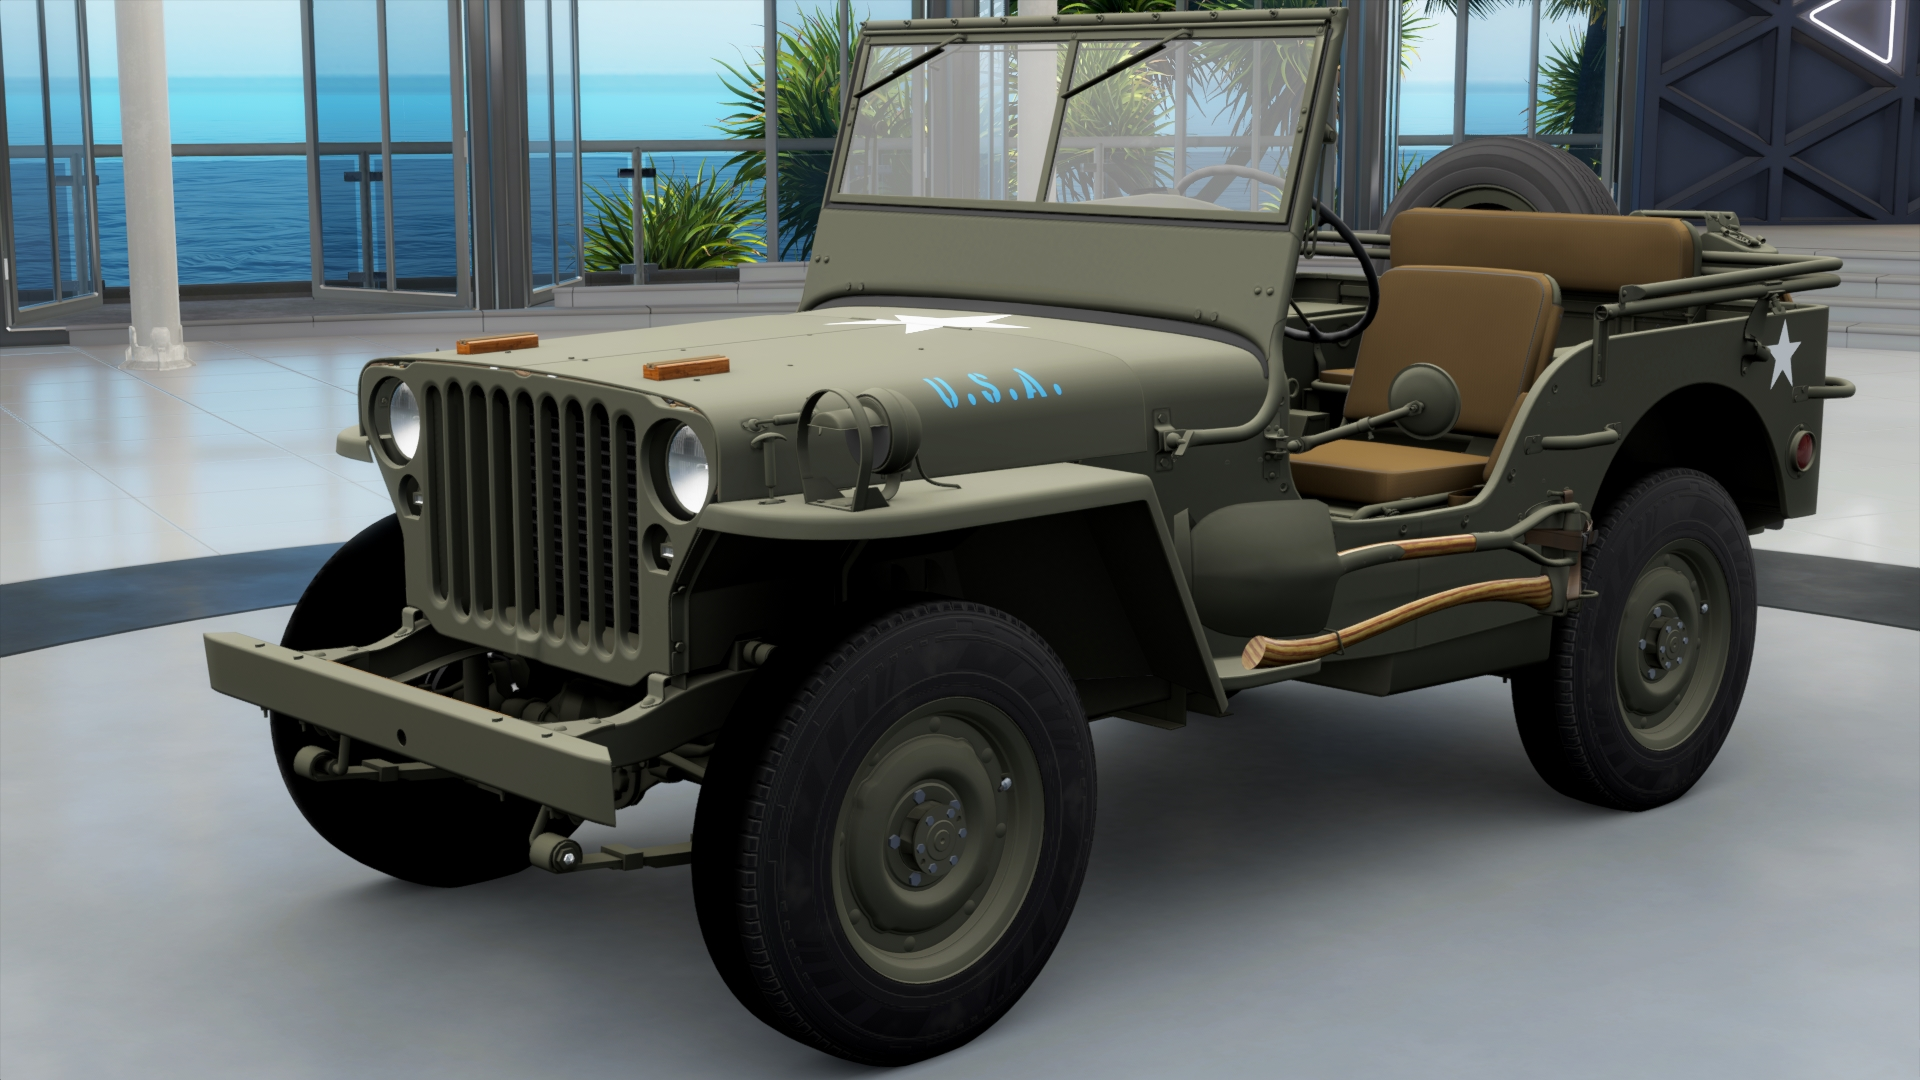 jeep willys mb forza motorsport wiki fandom powered by wikia. Black Bedroom Furniture Sets. Home Design Ideas